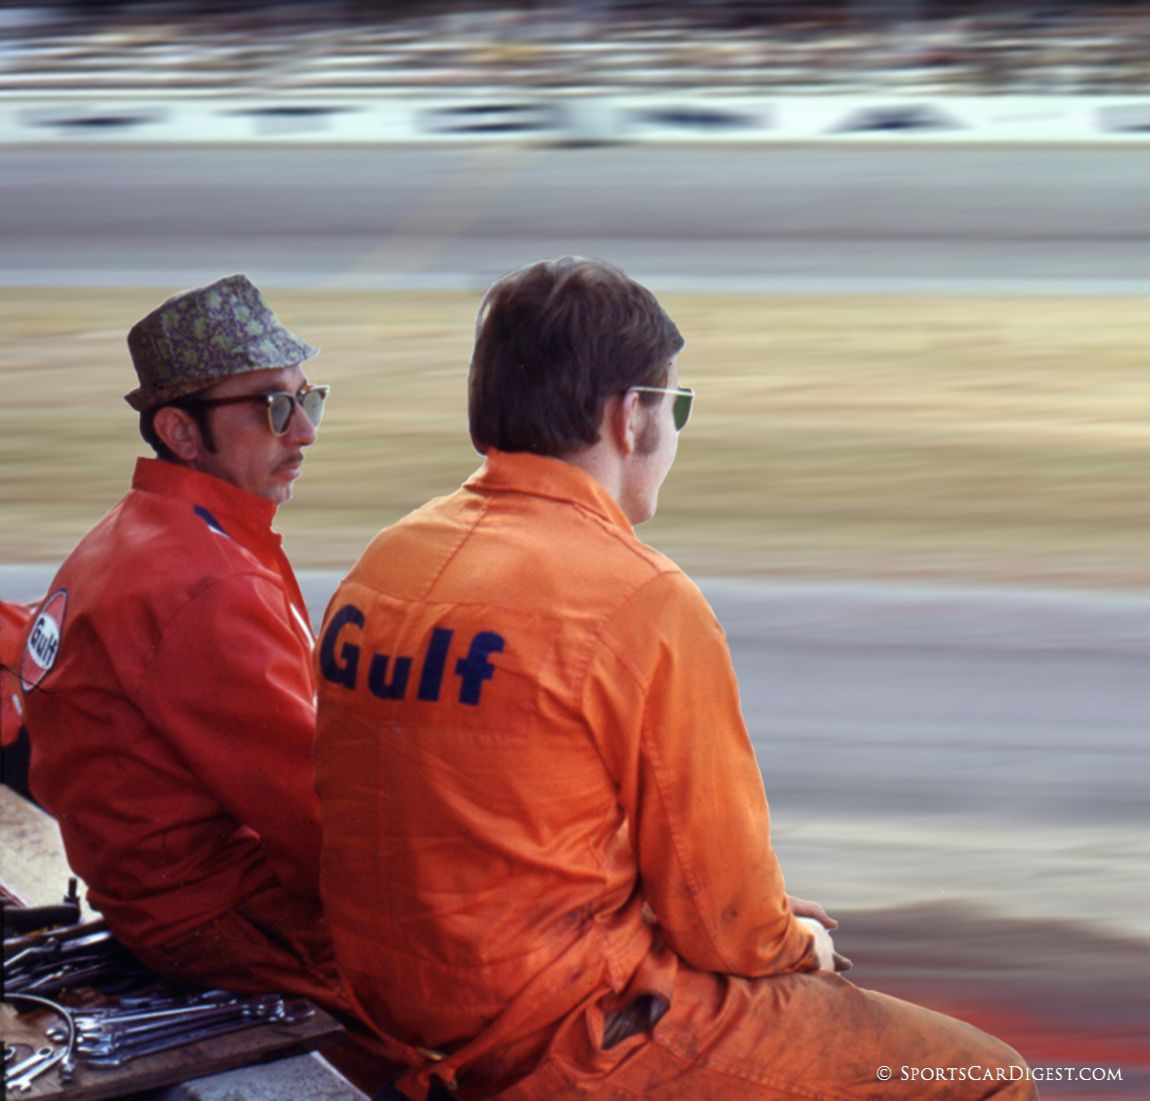 Gulf mechanics waiting for the next pit stop. The fellow with the hat is the legendary mechanic, Ermanno Cuoghi. (Lou Galanos photo)